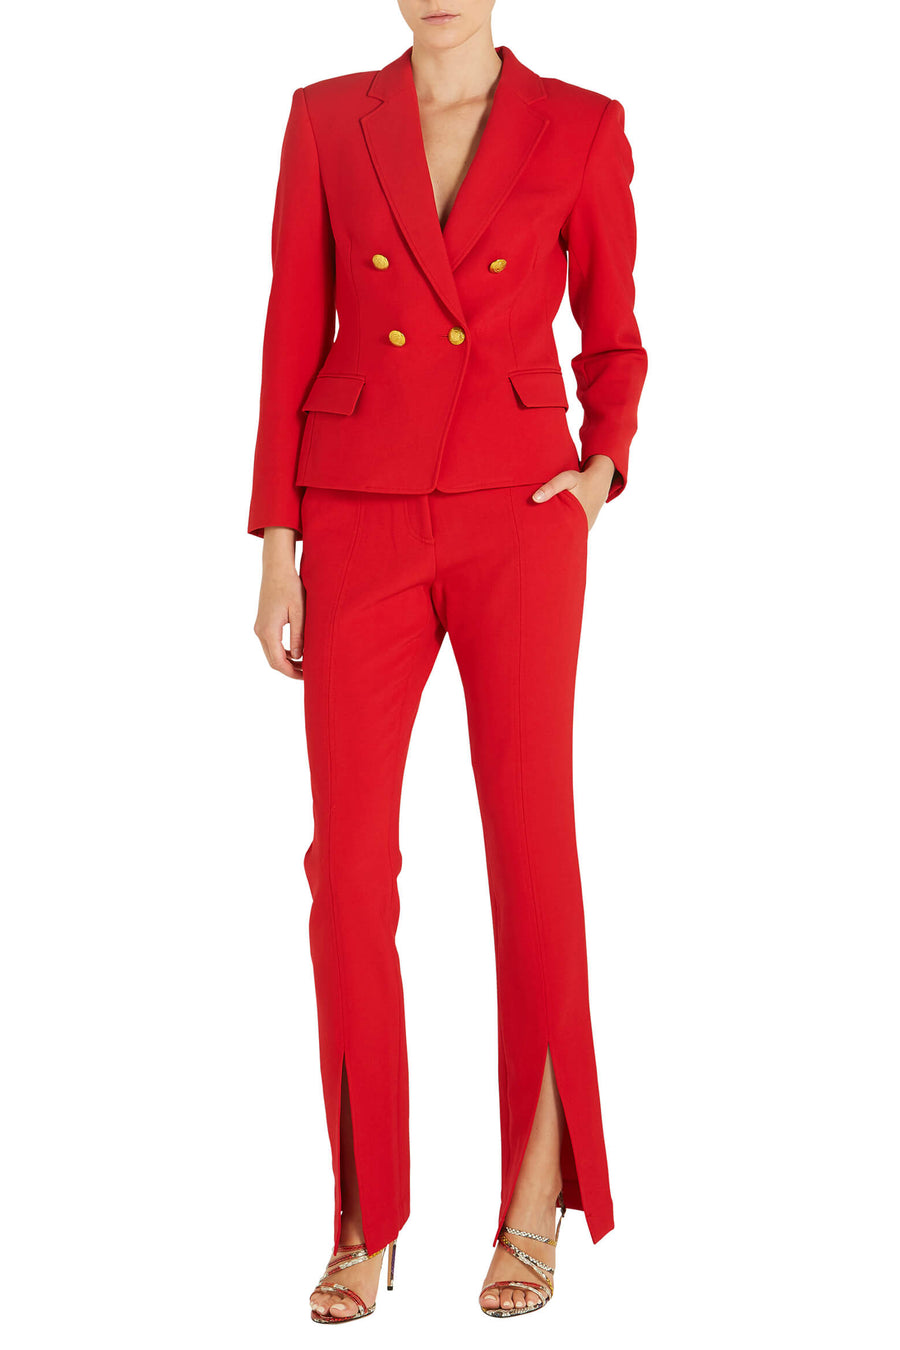 A.L.C Hendrick Blazer in red from The New Trend